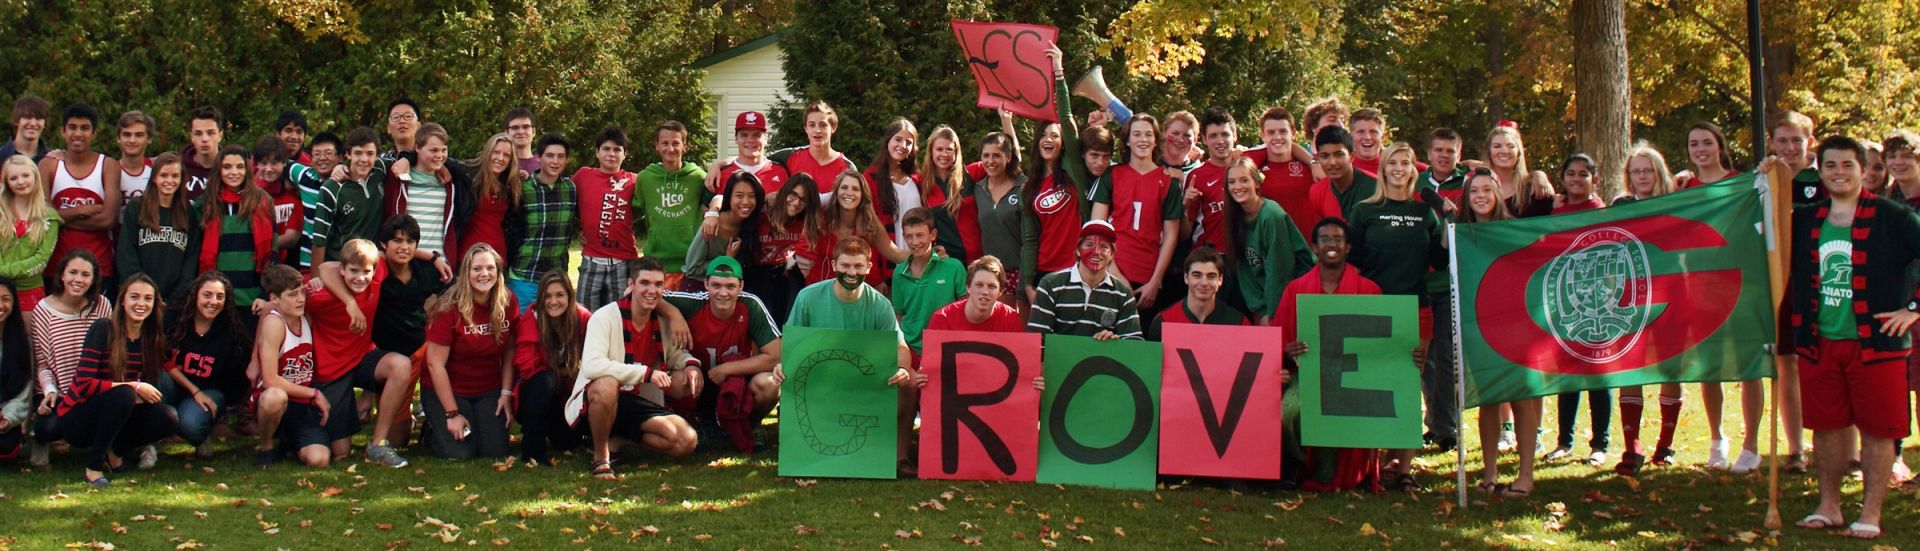 dressed in red and green,have fun at an all-school pep rally,LCS students